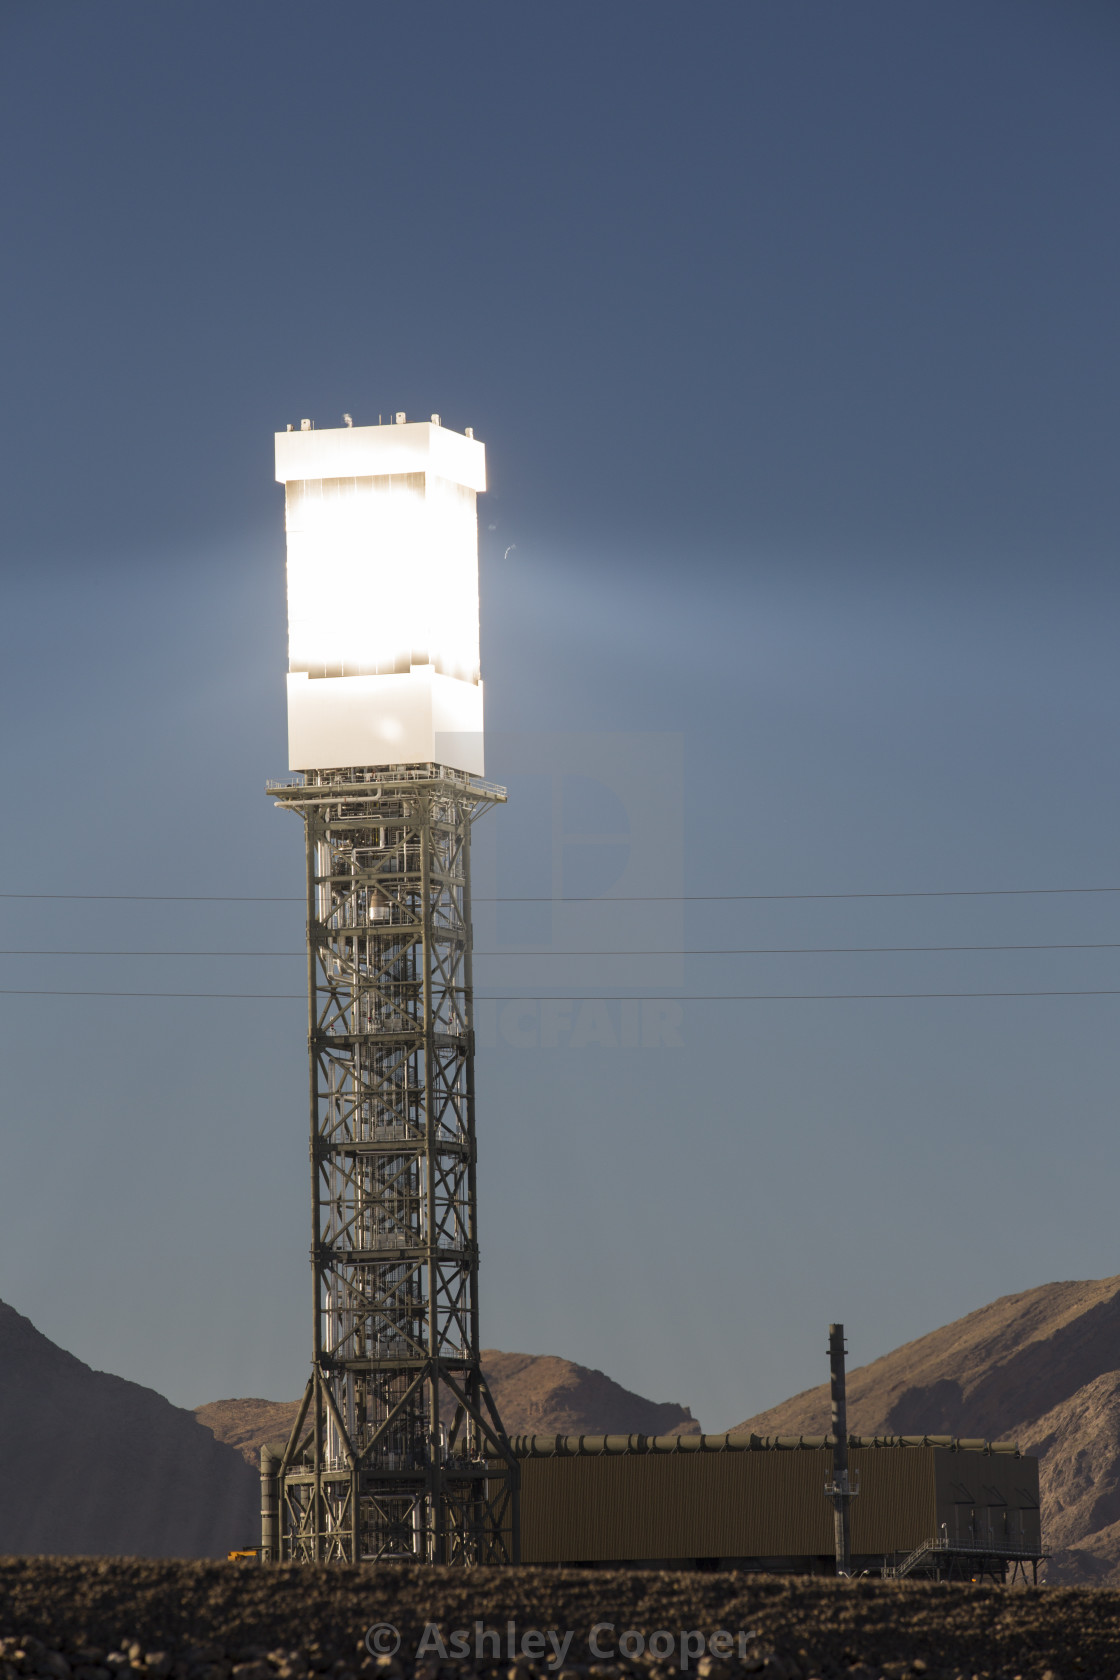 The Ivanpah Solar Thermal Power Plant in California''s